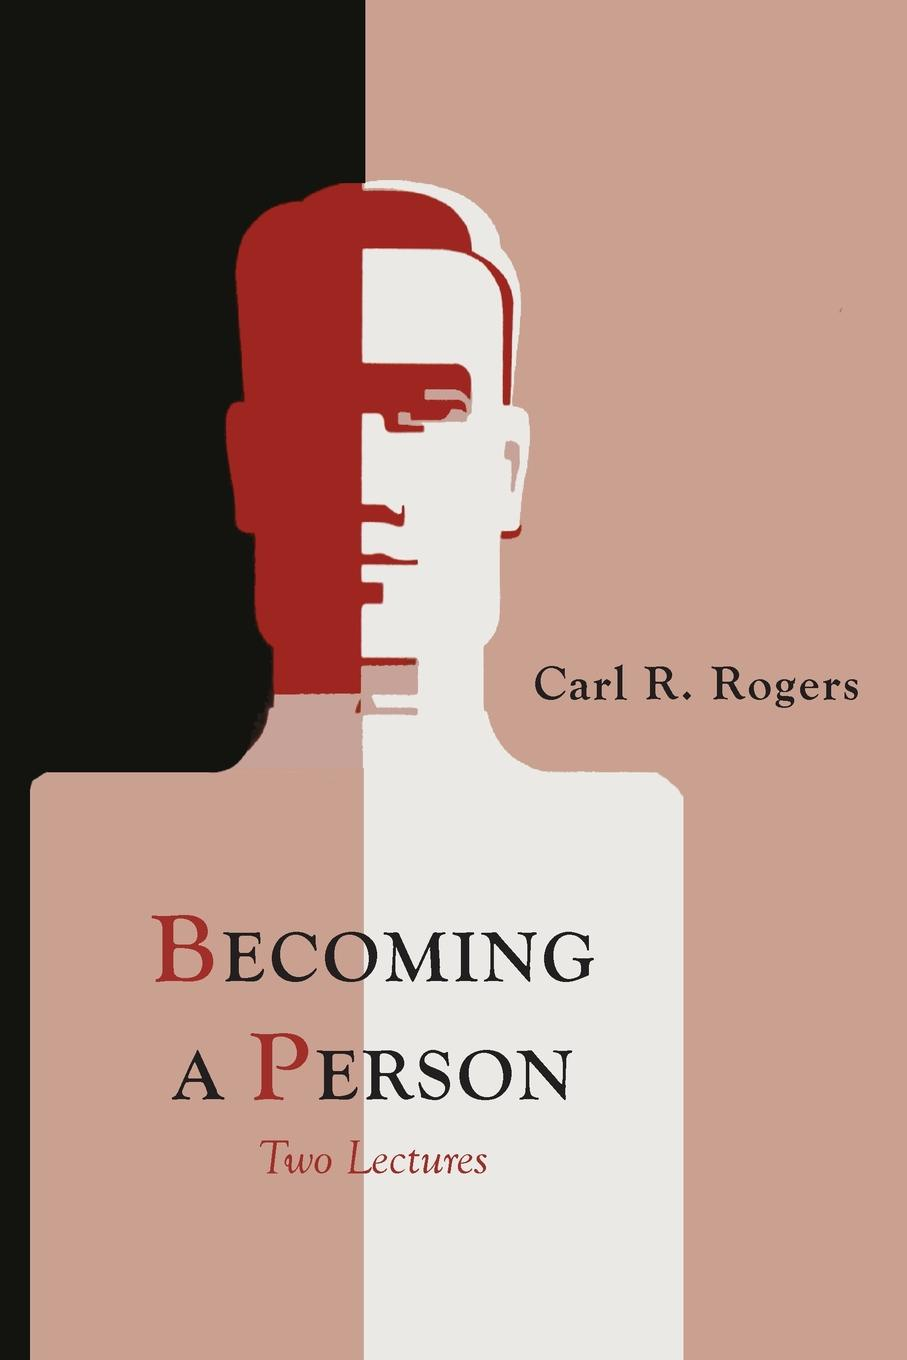 Carl Rogers Becoming a Person teacher centered vs learner centered approach